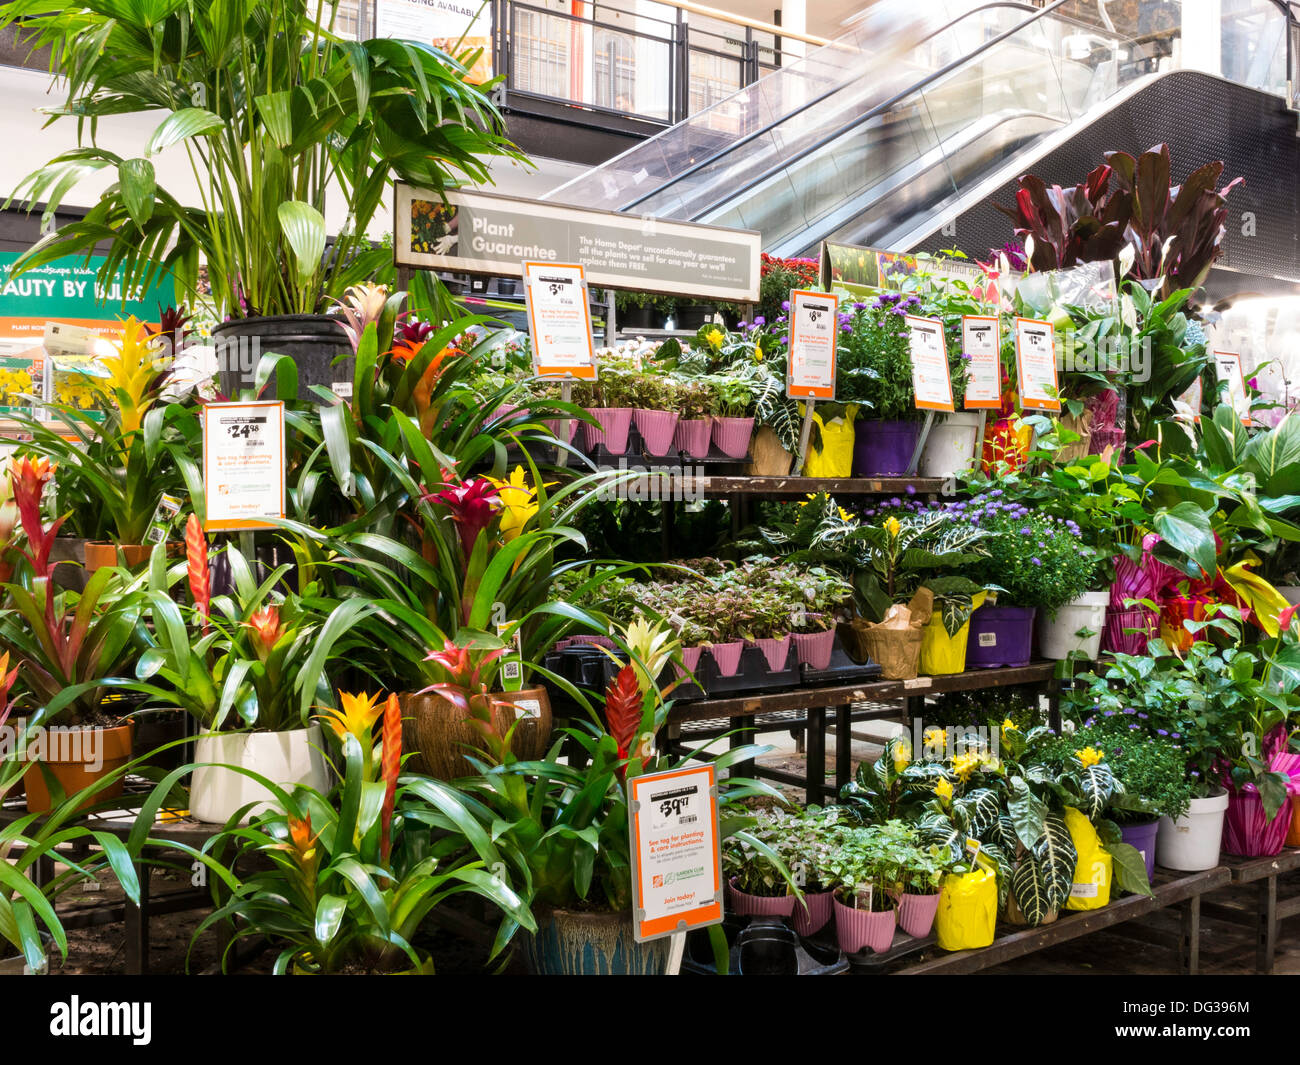 Home depot store garden center display nyc stock photo for Home depot jardineria